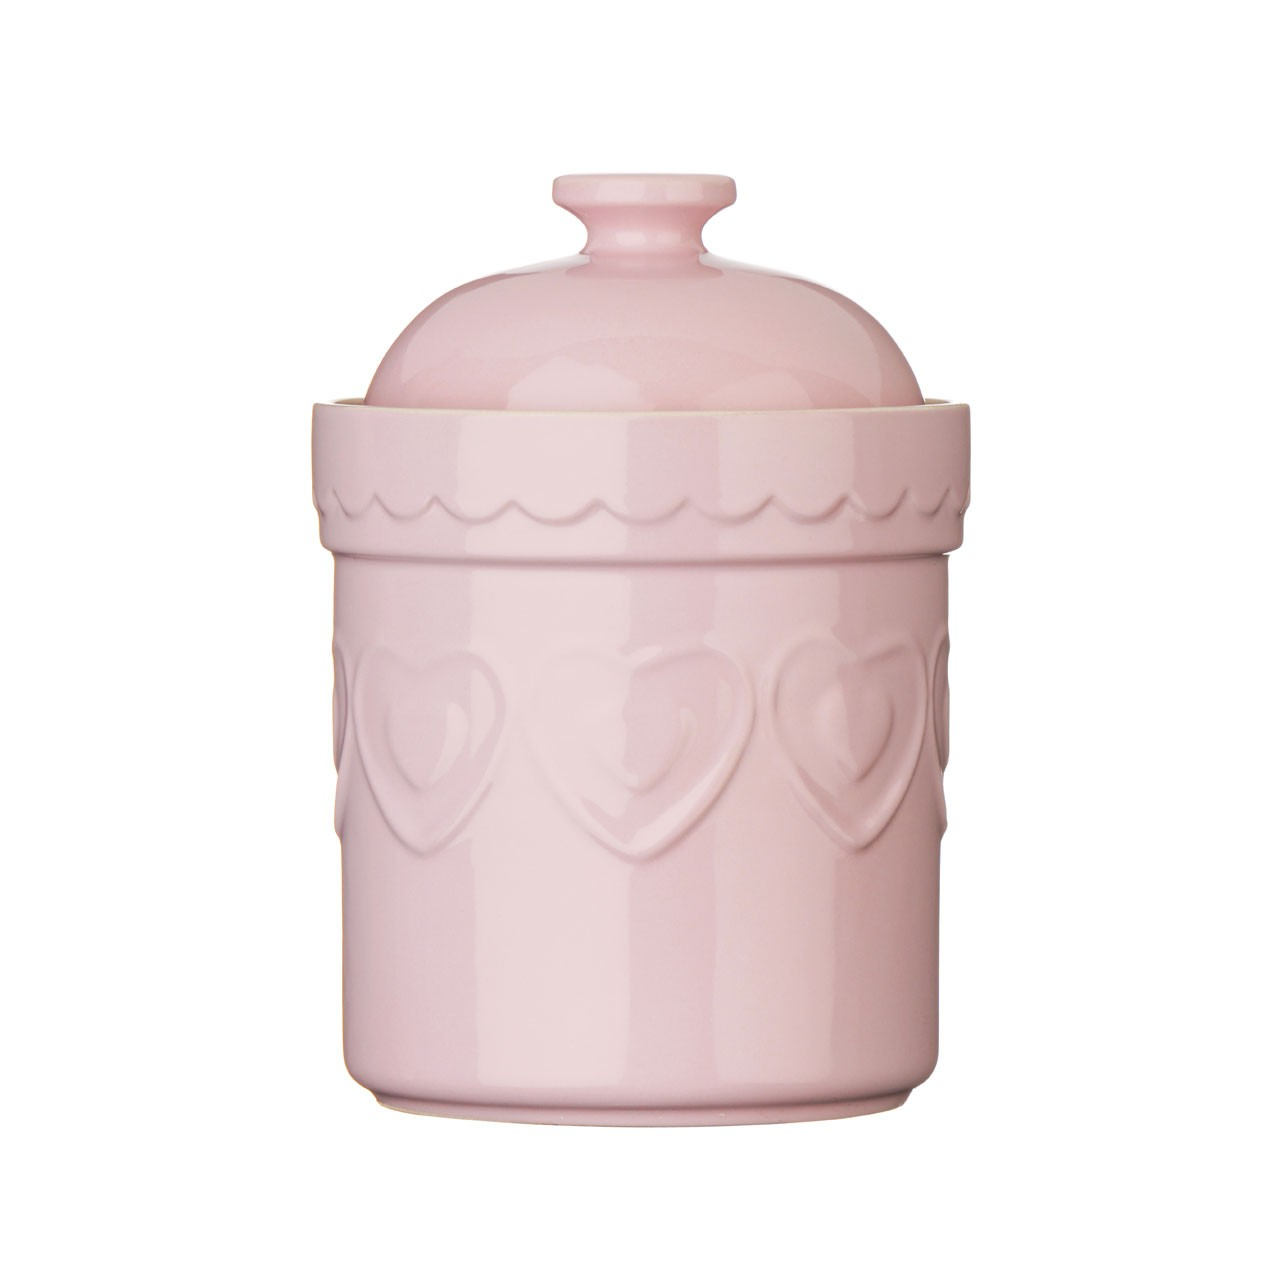 Sweet Heart Storage Canister, Pastel Pink - Set Of 3